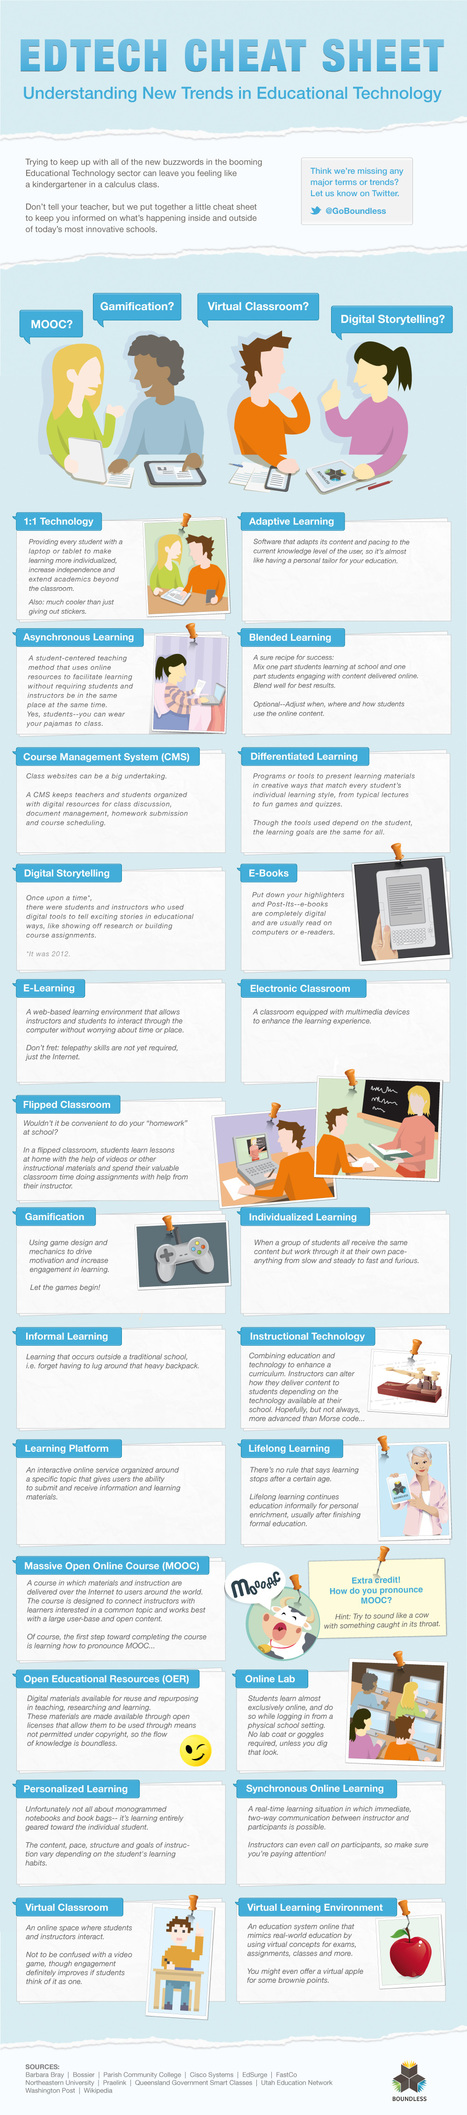 EdTech Cheat Sheet Infographic | Visual.ly | Technology in Teaching and learning | Scoop.it